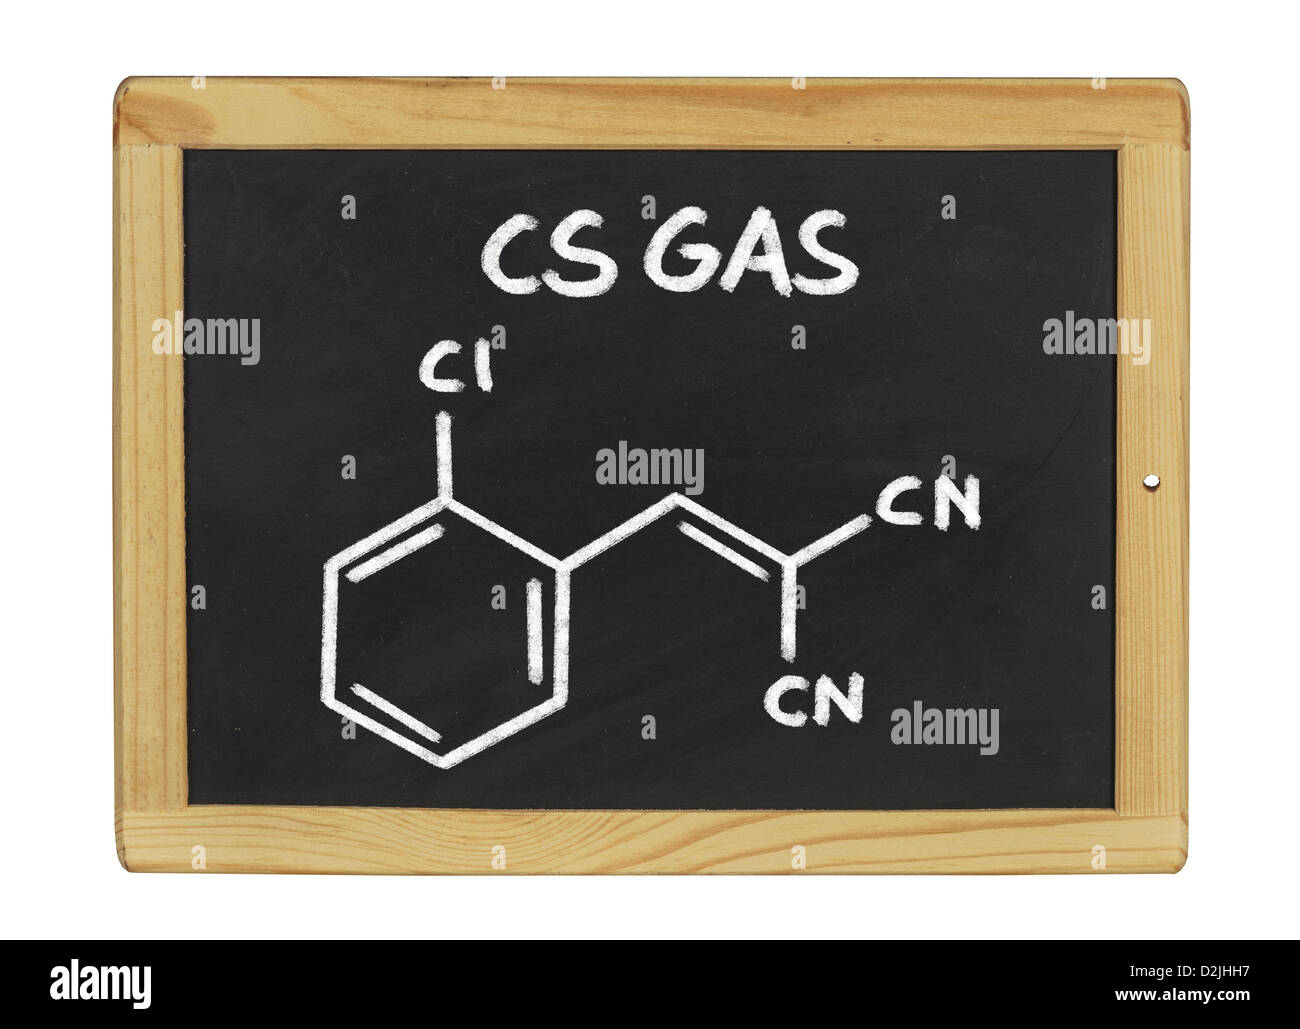 chemical formula of cs gas on a blackboard - Stock Image